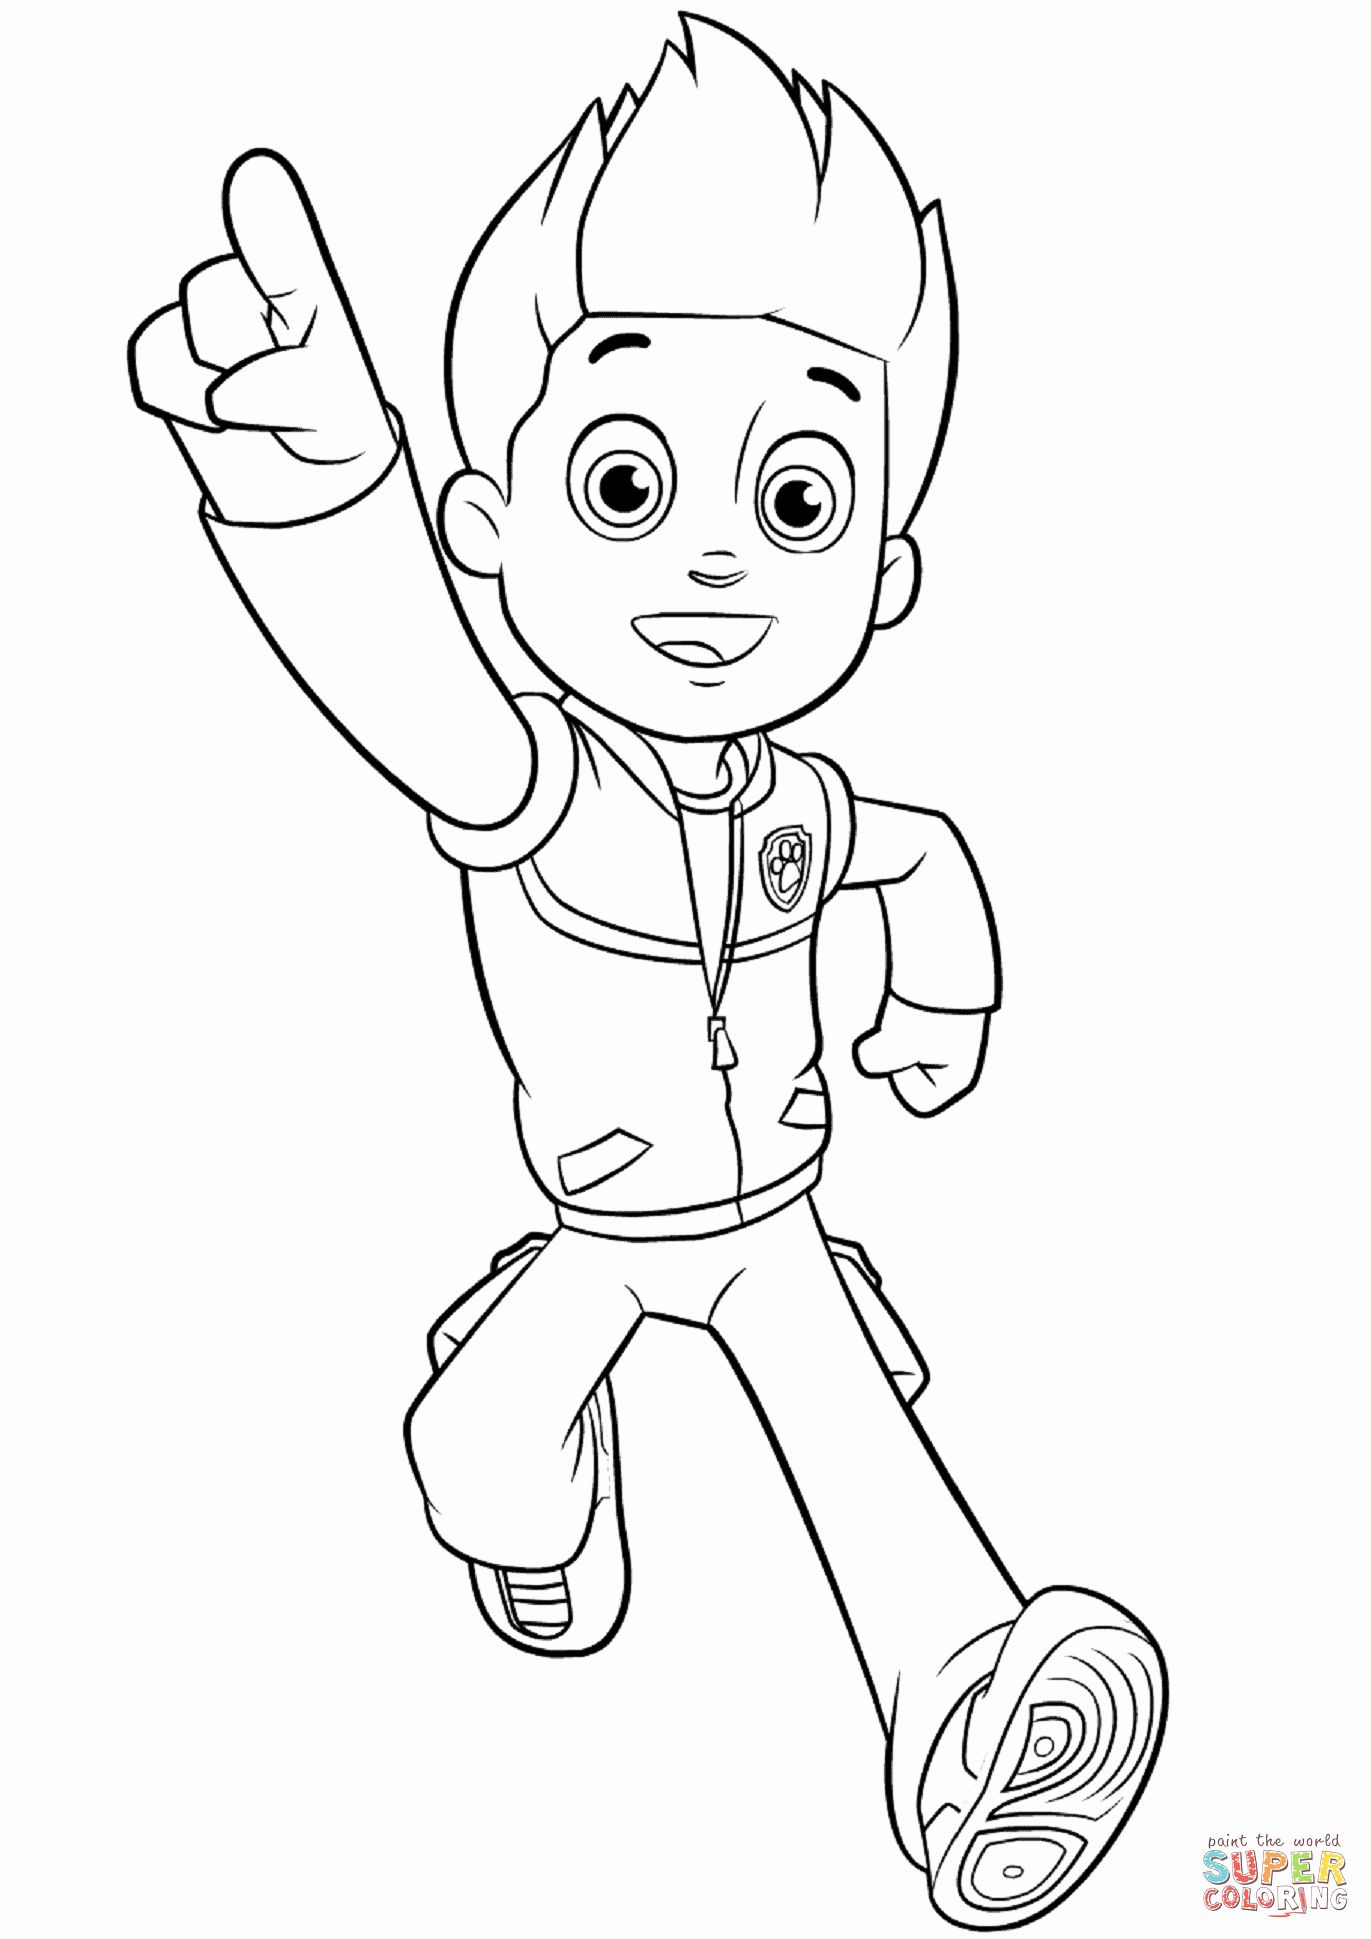 Paw Patrol Printable Coloring Pages Fresh Paw Patrol Ryder